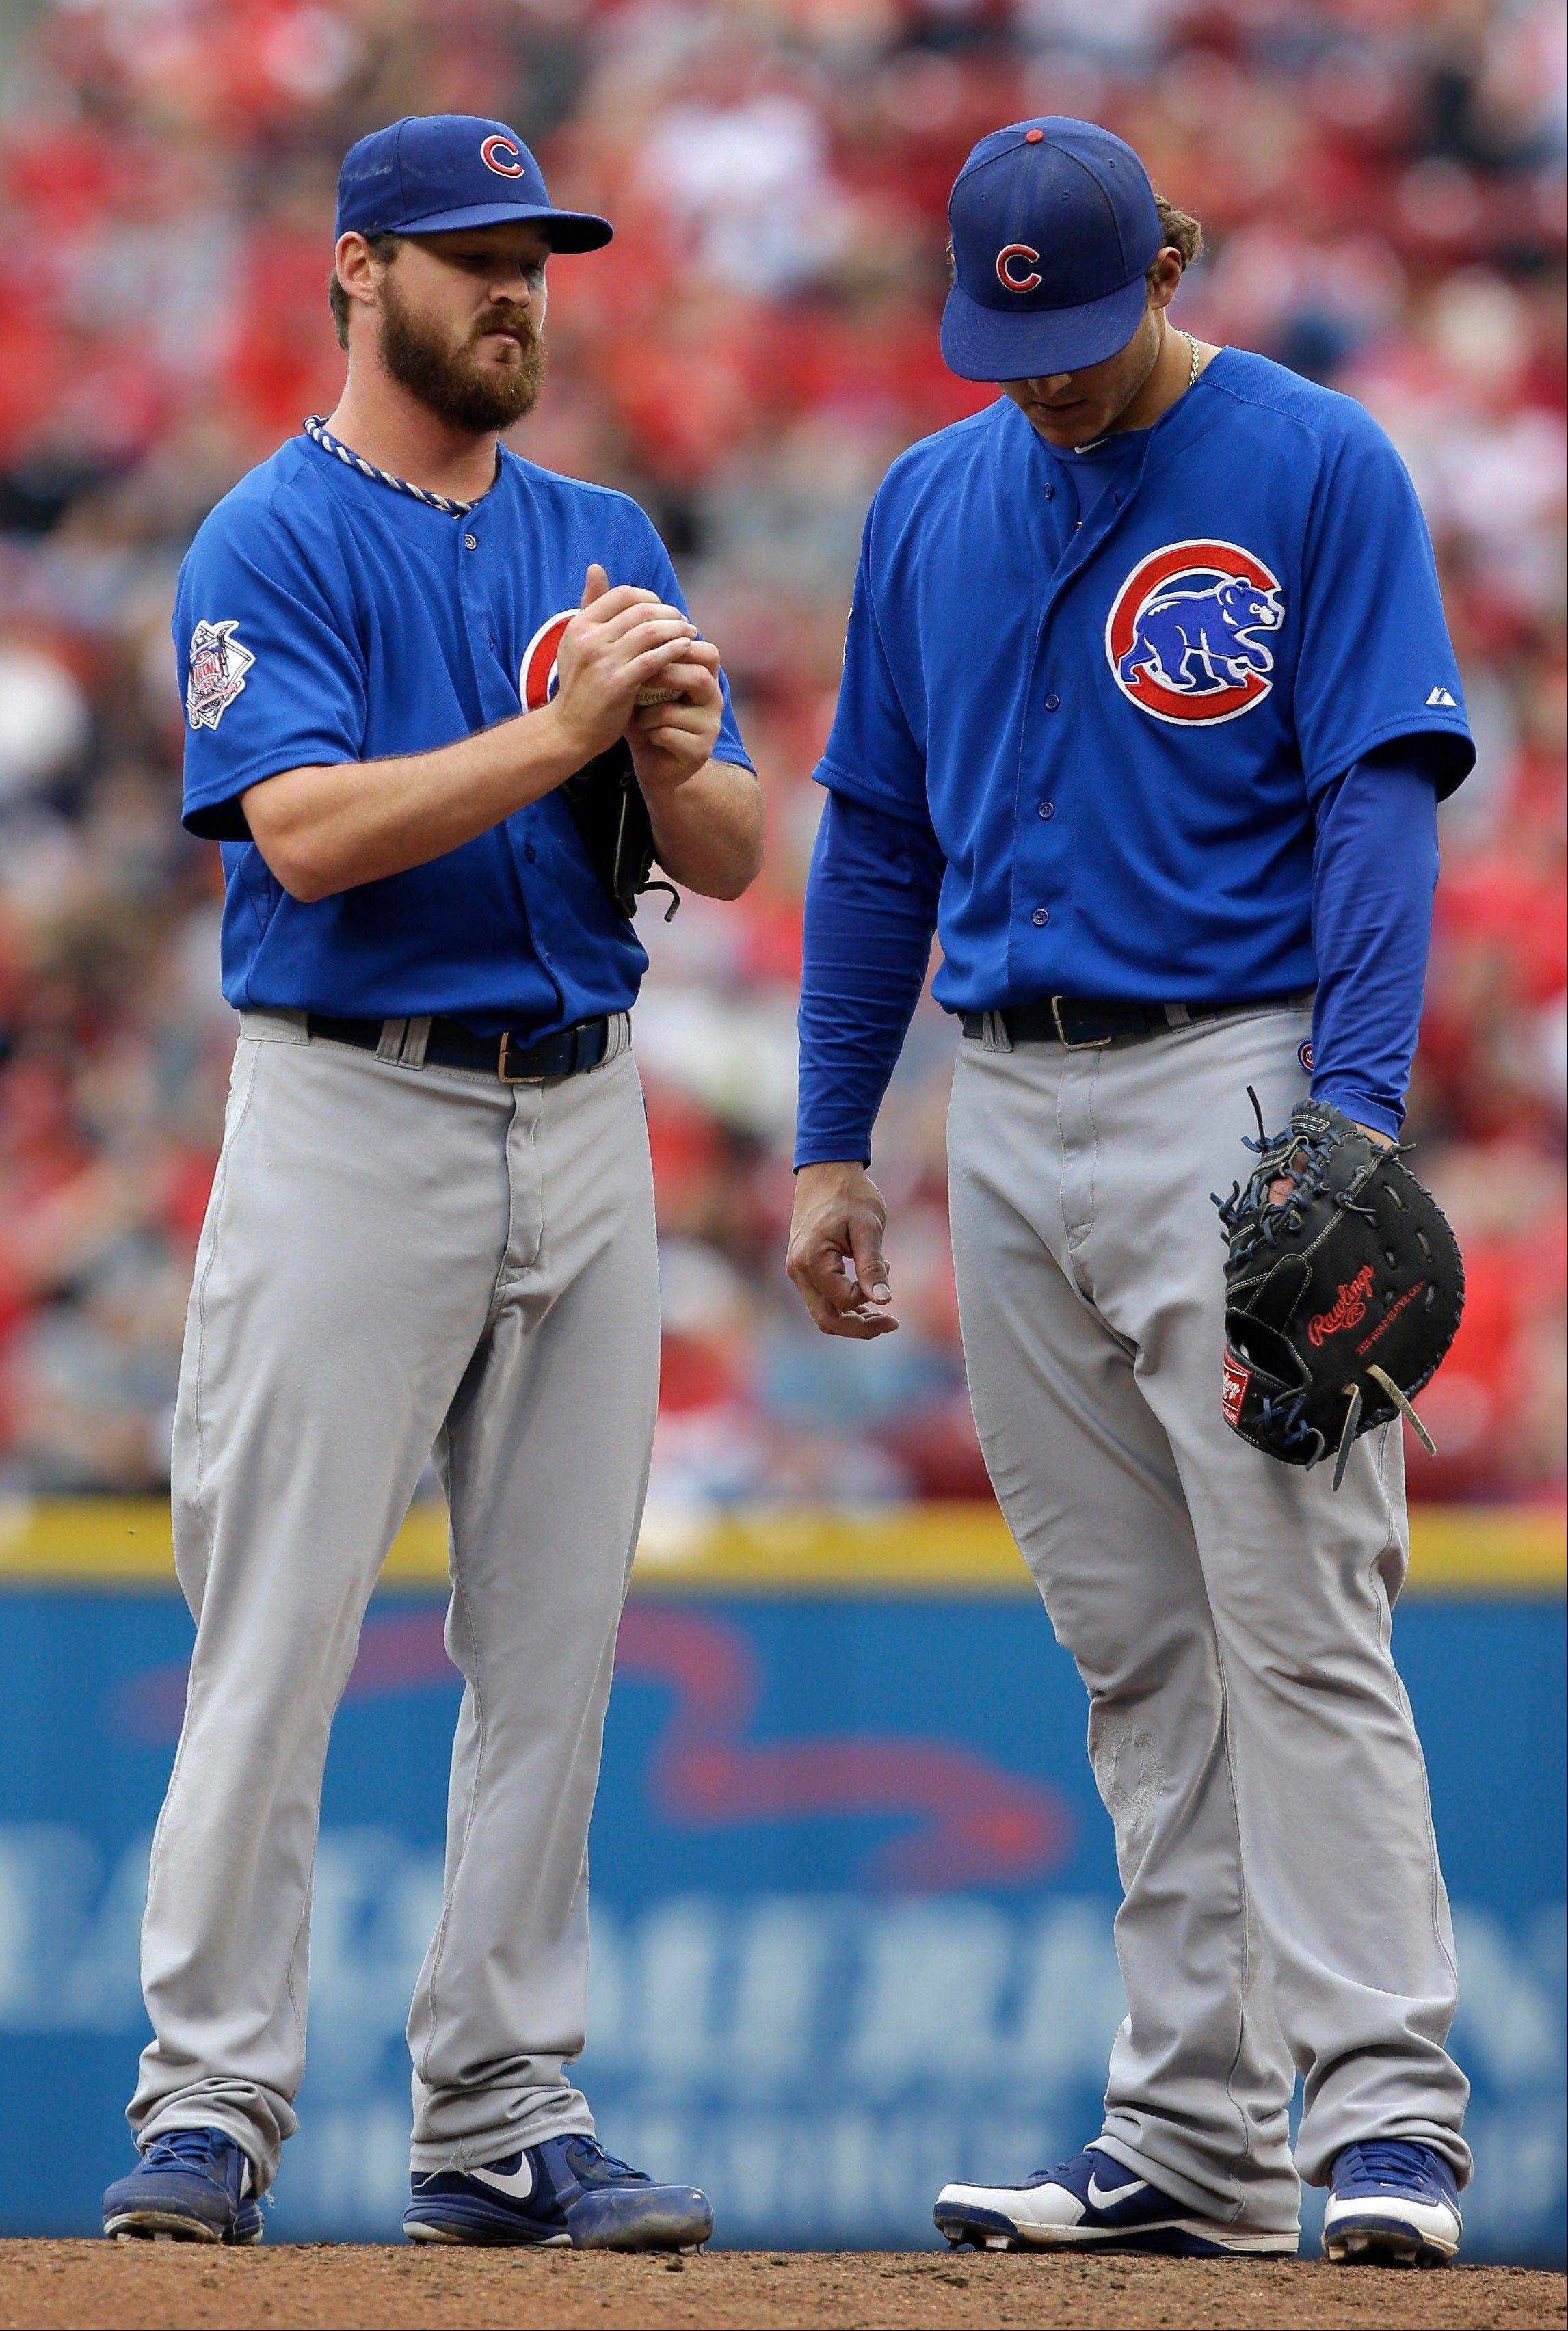 Chicago Cubs starting pitcher Travis Wood, left, stands with first baseman Anthony Rizzo on the mound in the fourth inning of a baseball game against the Cincinnati Reds, Saturday, May 25, 2013, in Cincinnati. (AP Photo/Al Behrman)